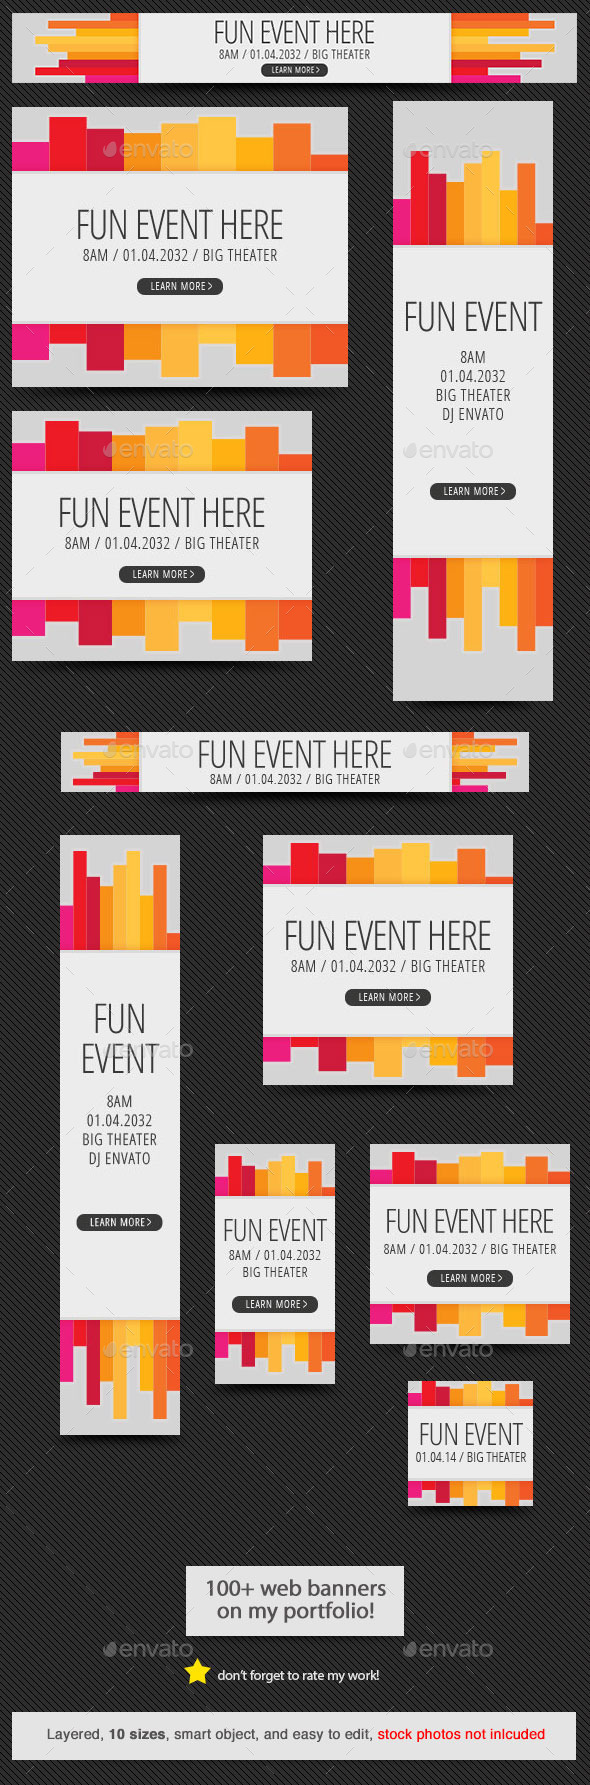 Colorful Event Web Banner - Banners & Ads Web Elements